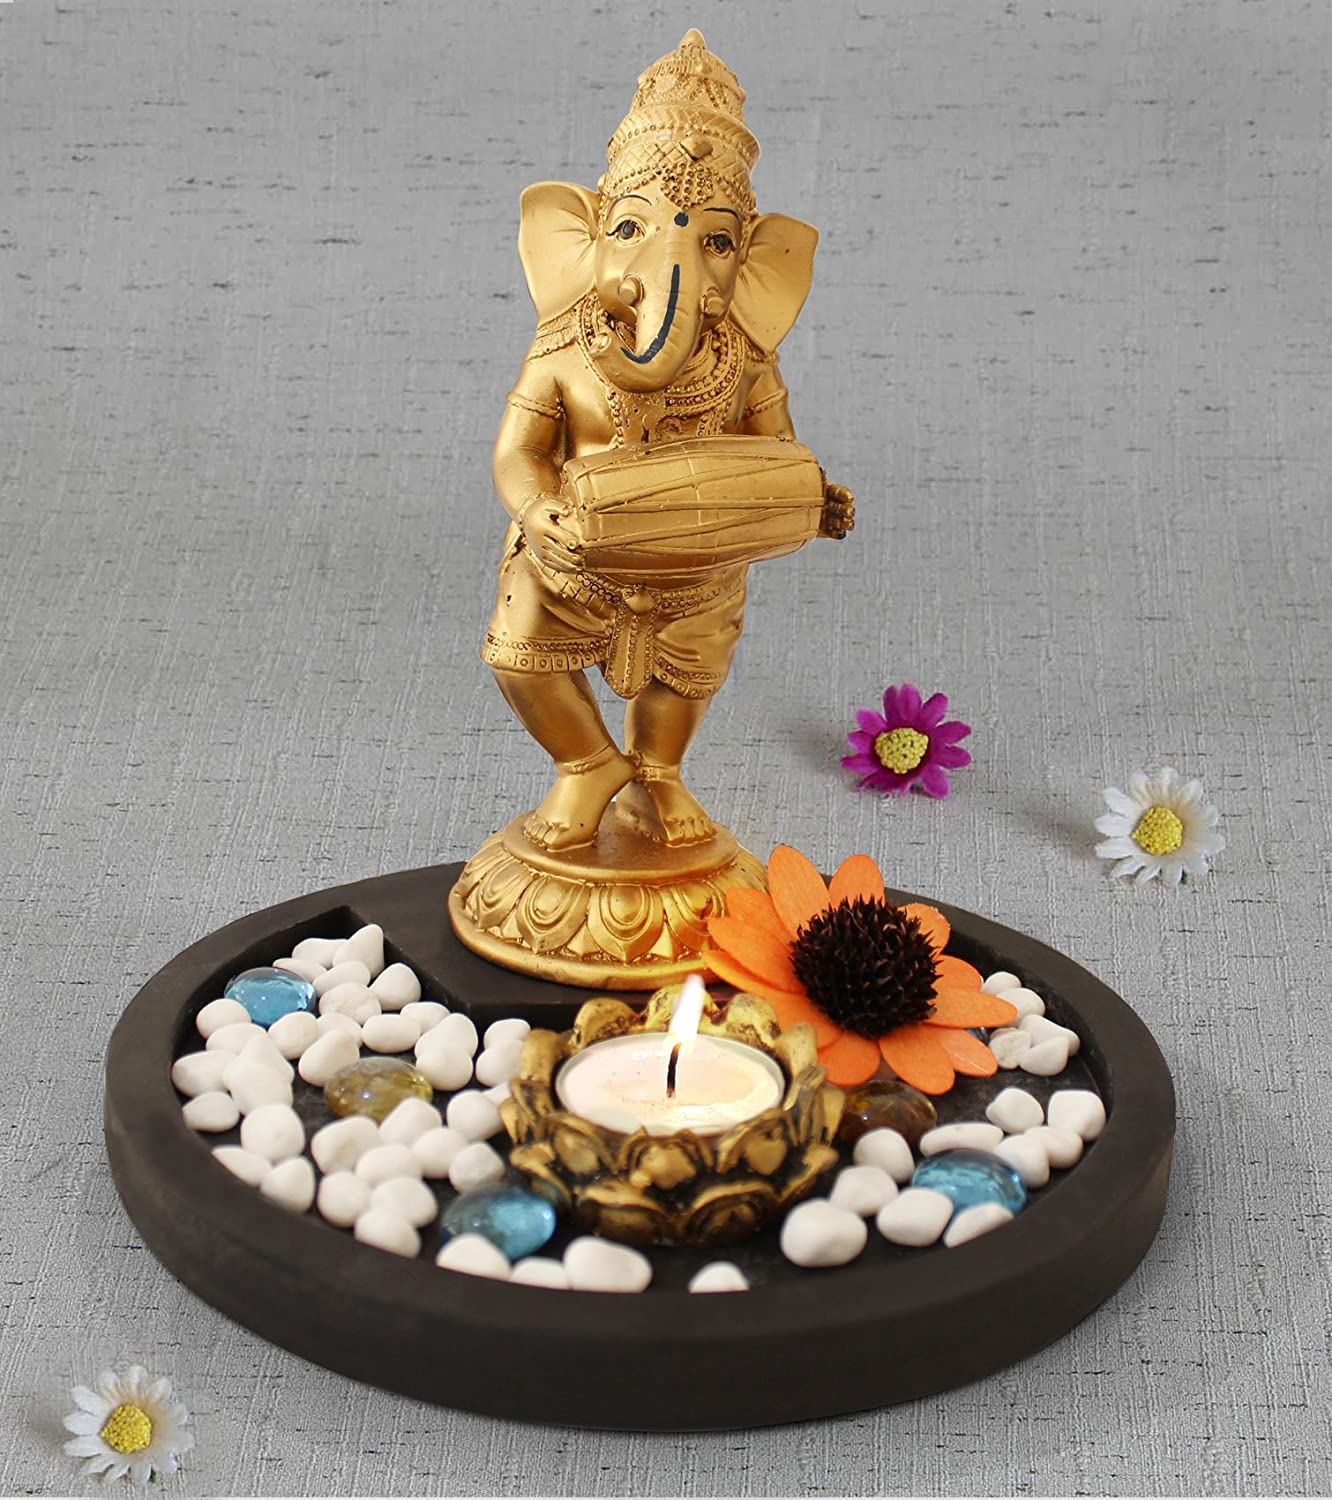 TIED RIBBONS Ganesh Statue Playing Dholak Figurine with Tealight and Stones on Wooden Tray Center Piece - Ganesha Decorative Item for House Warming Home Decoration